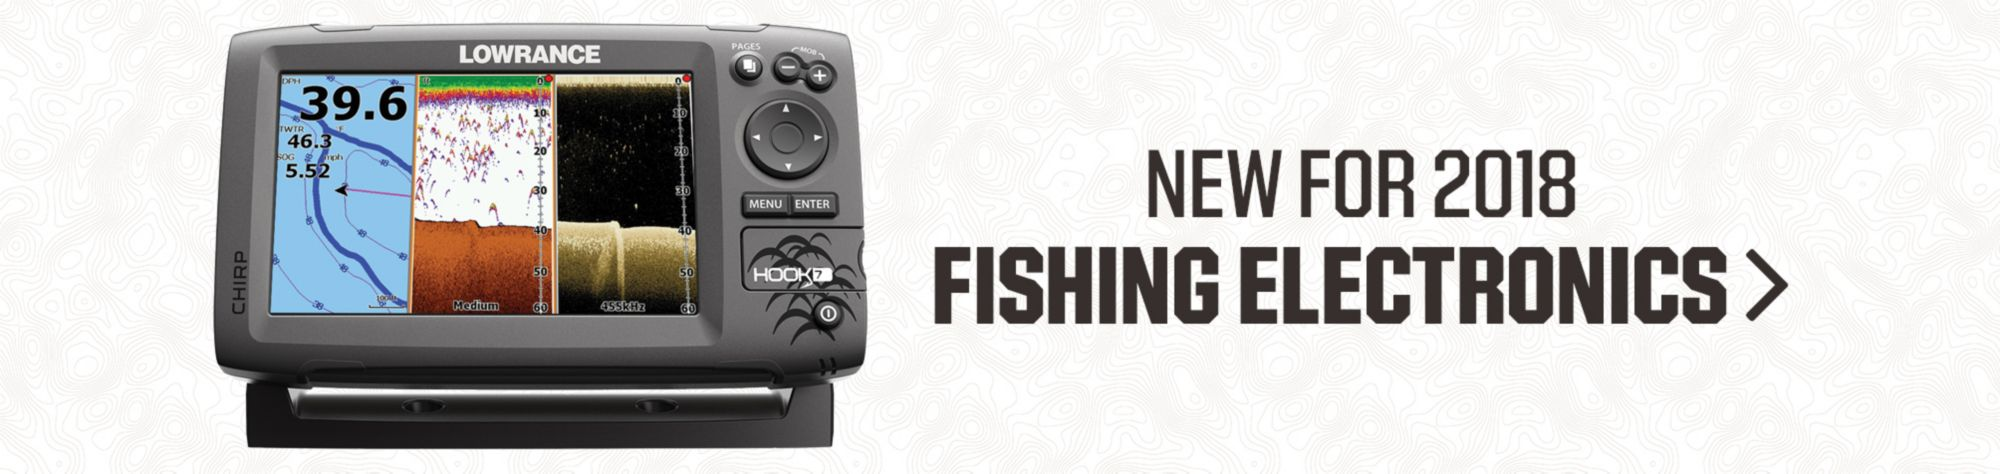 NEW FOR 2018 FISHING ELECTRONICS